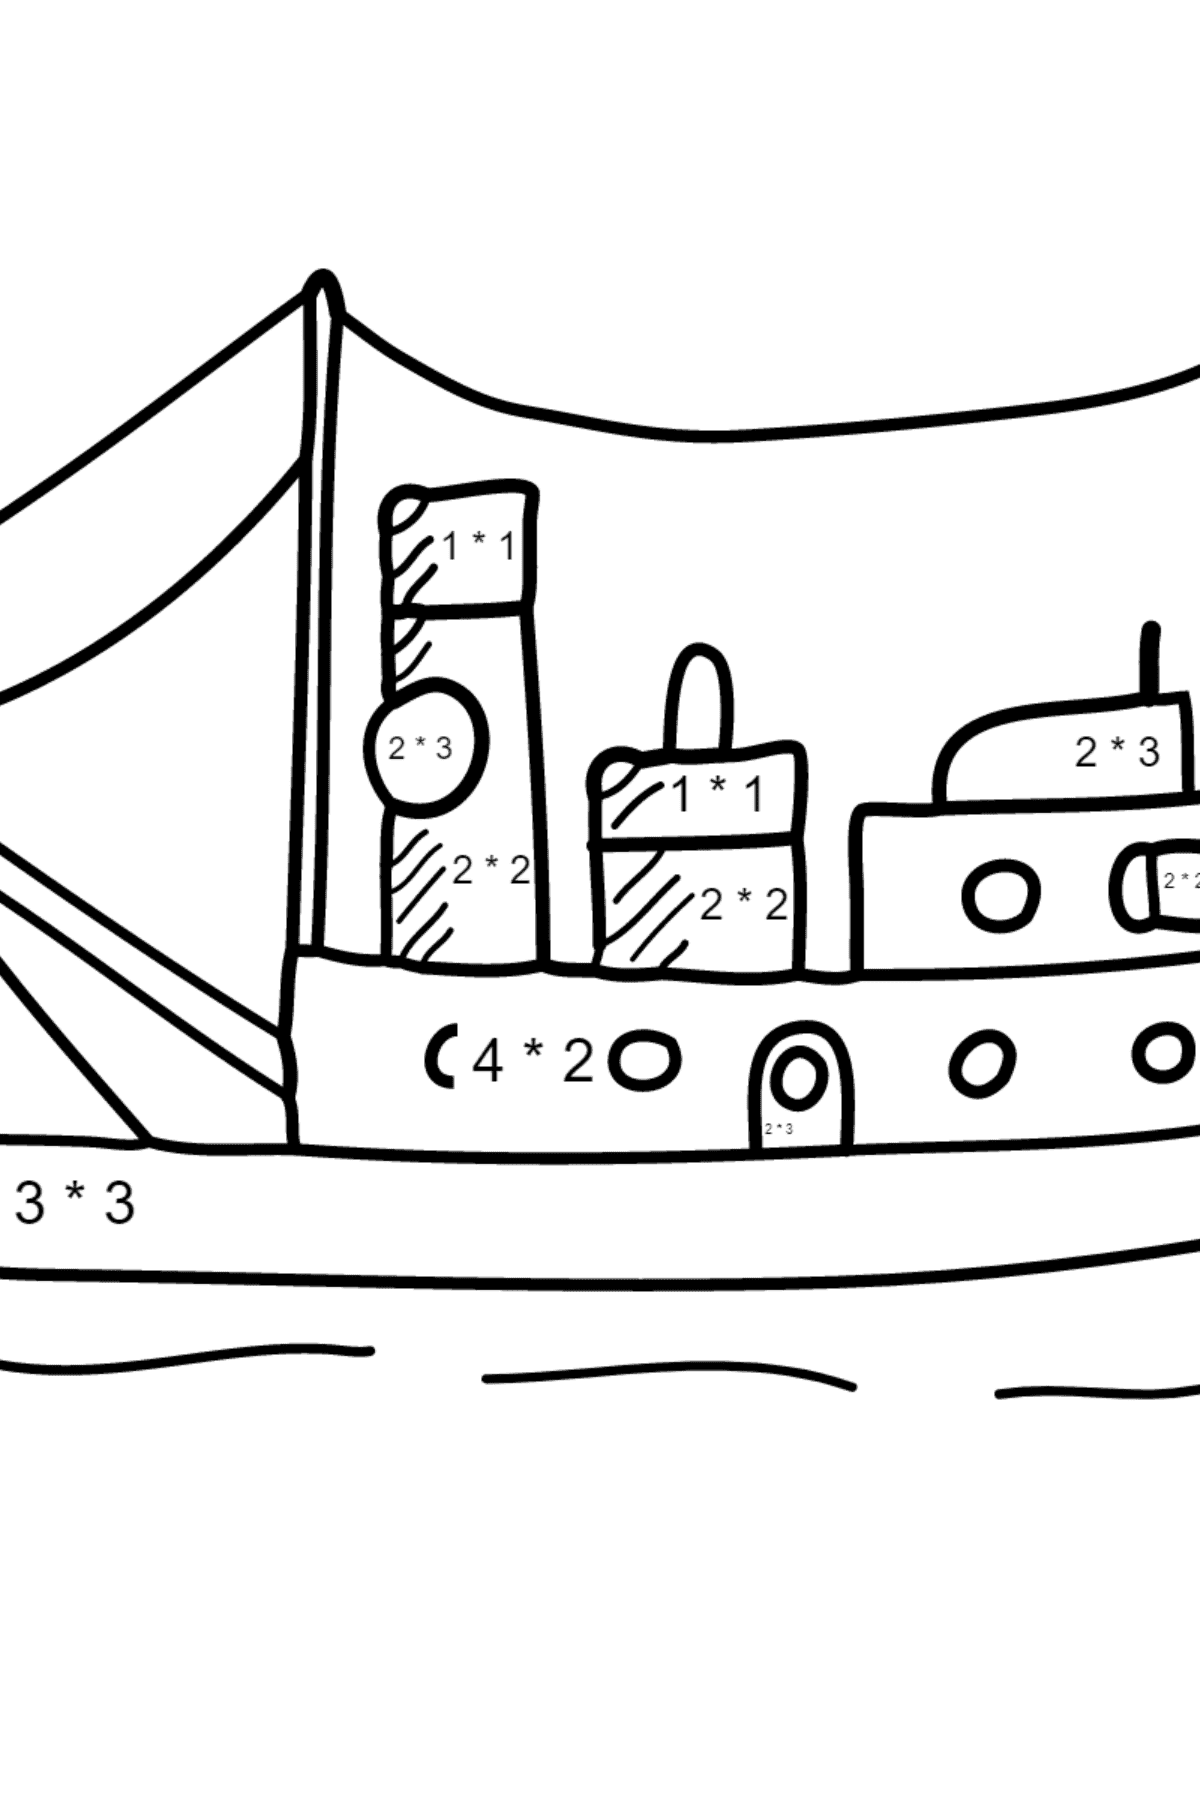 Coloring Page - A Cargo Ship - Math Coloring - Multiplication for Kids